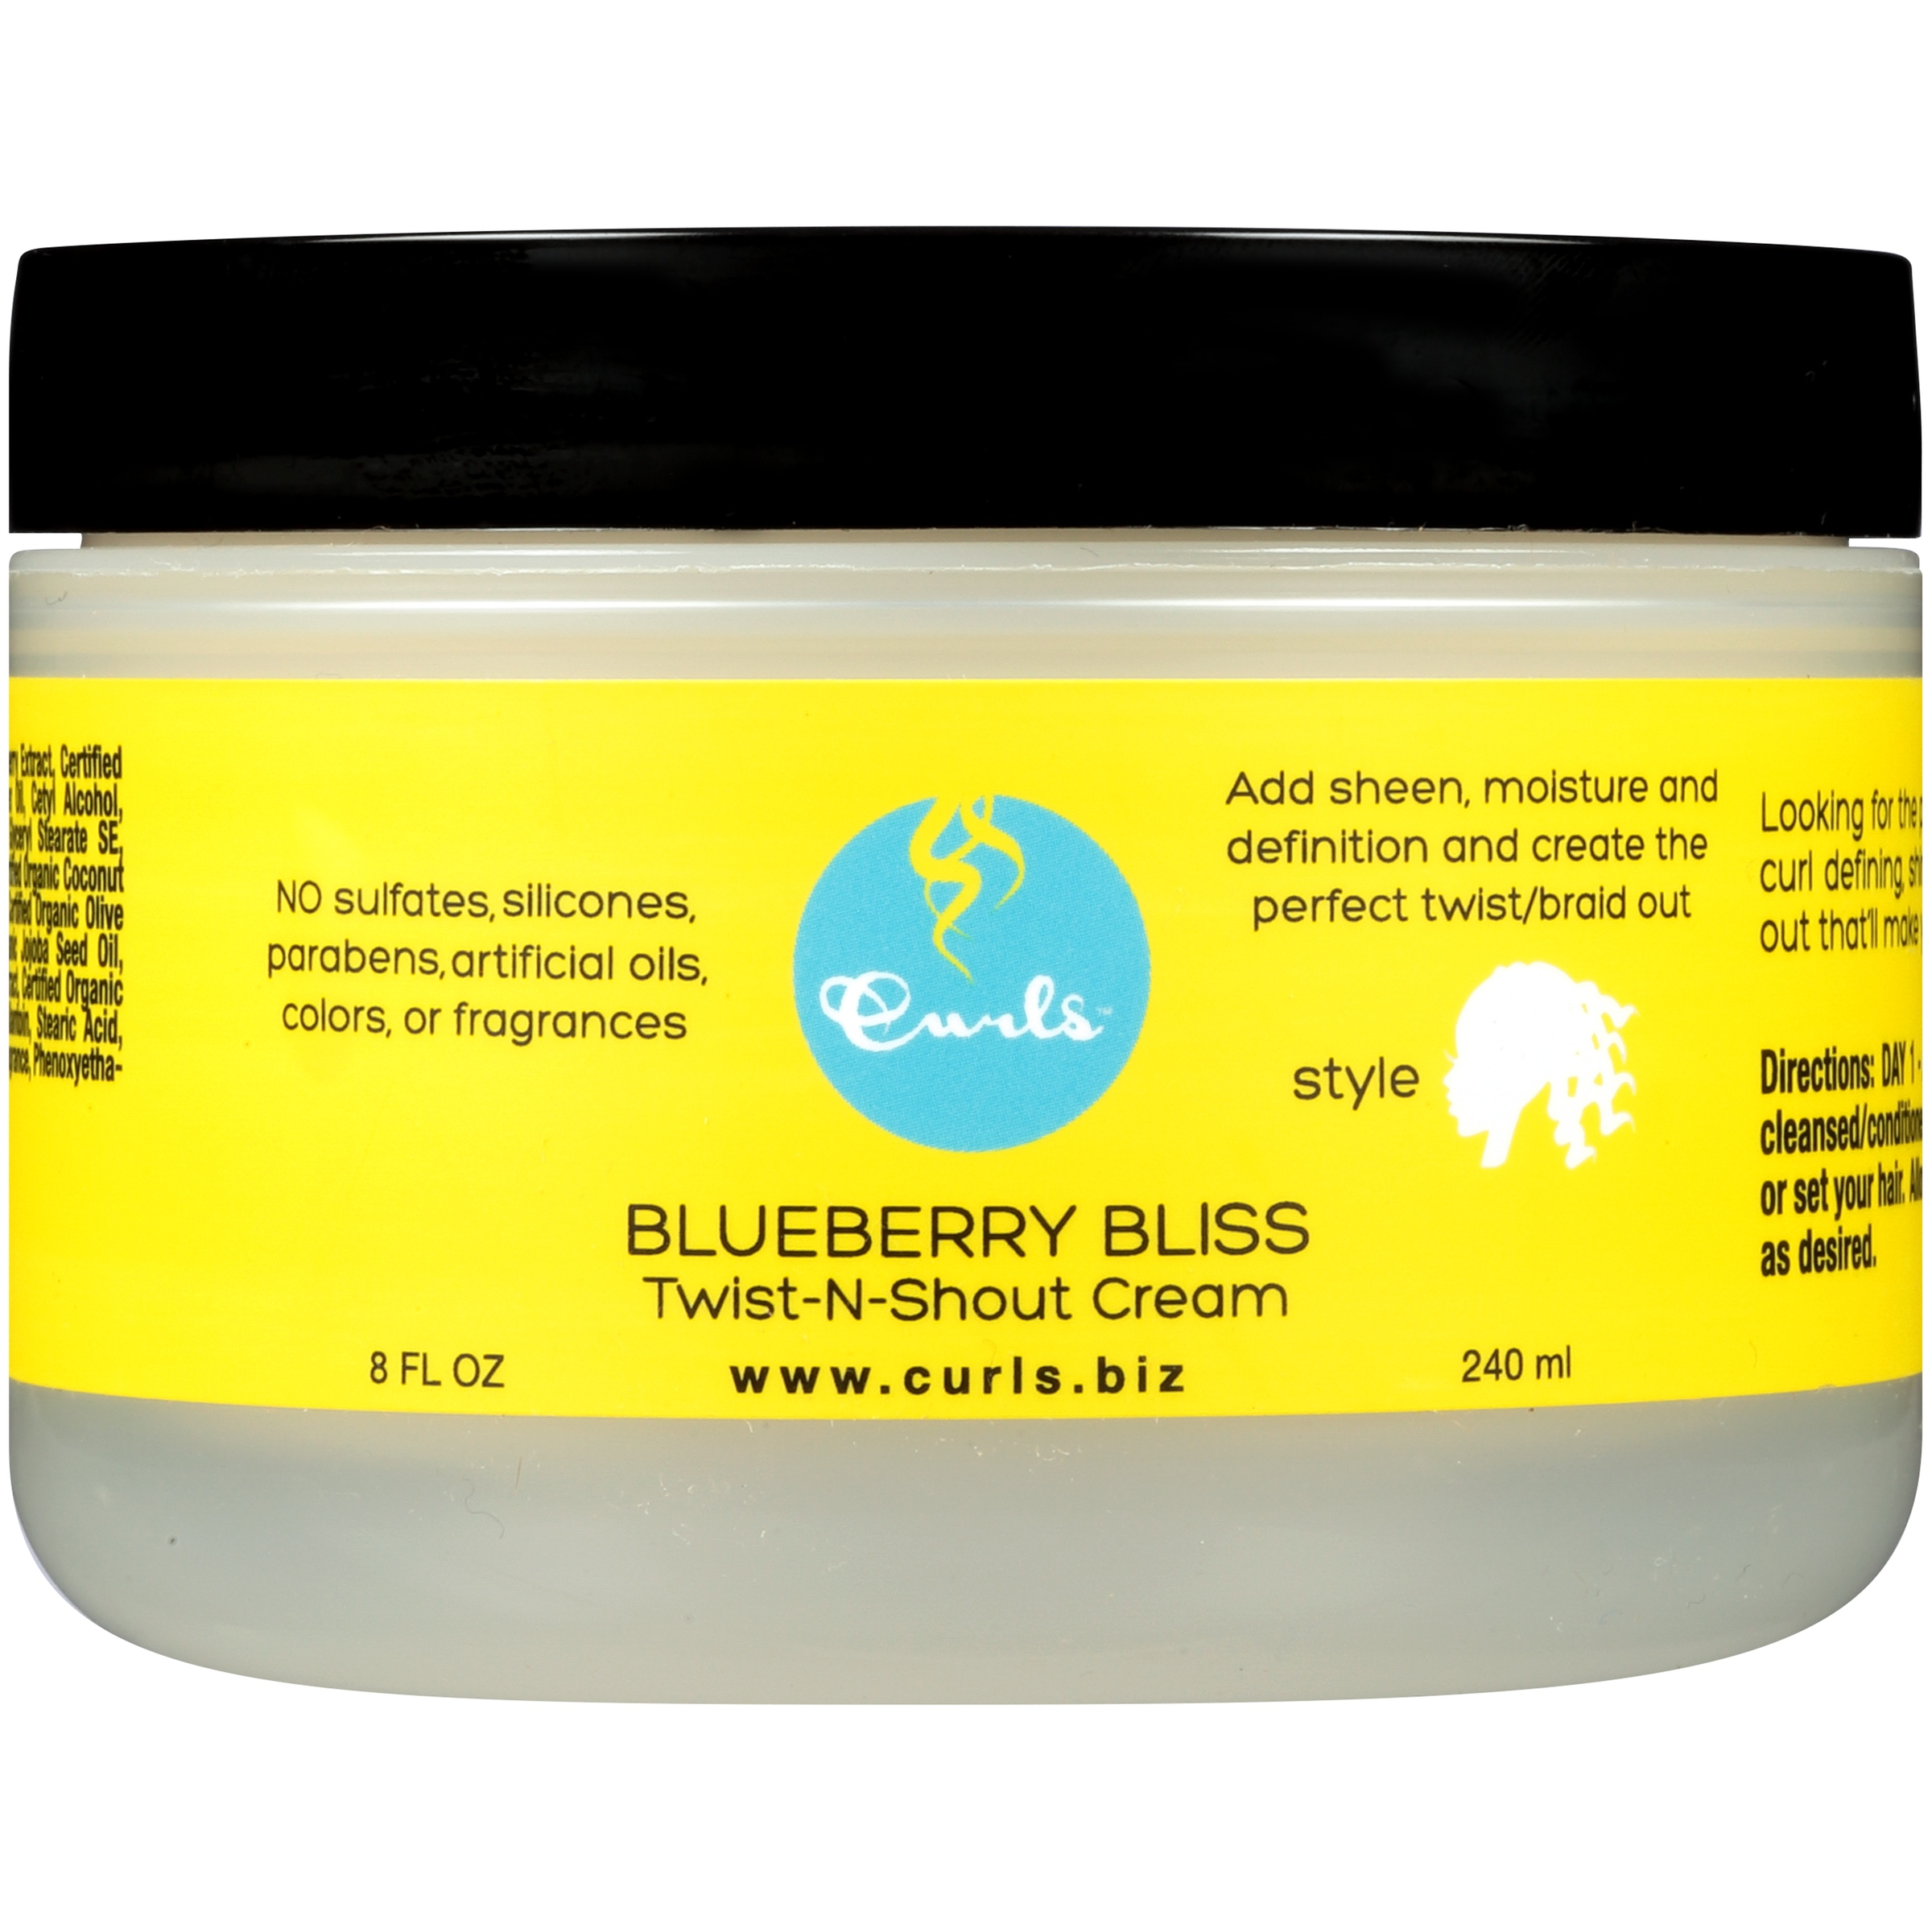 Curls™ Blueberry Bliss Twist-n-Shout Cream 8 fl. oz. Jar